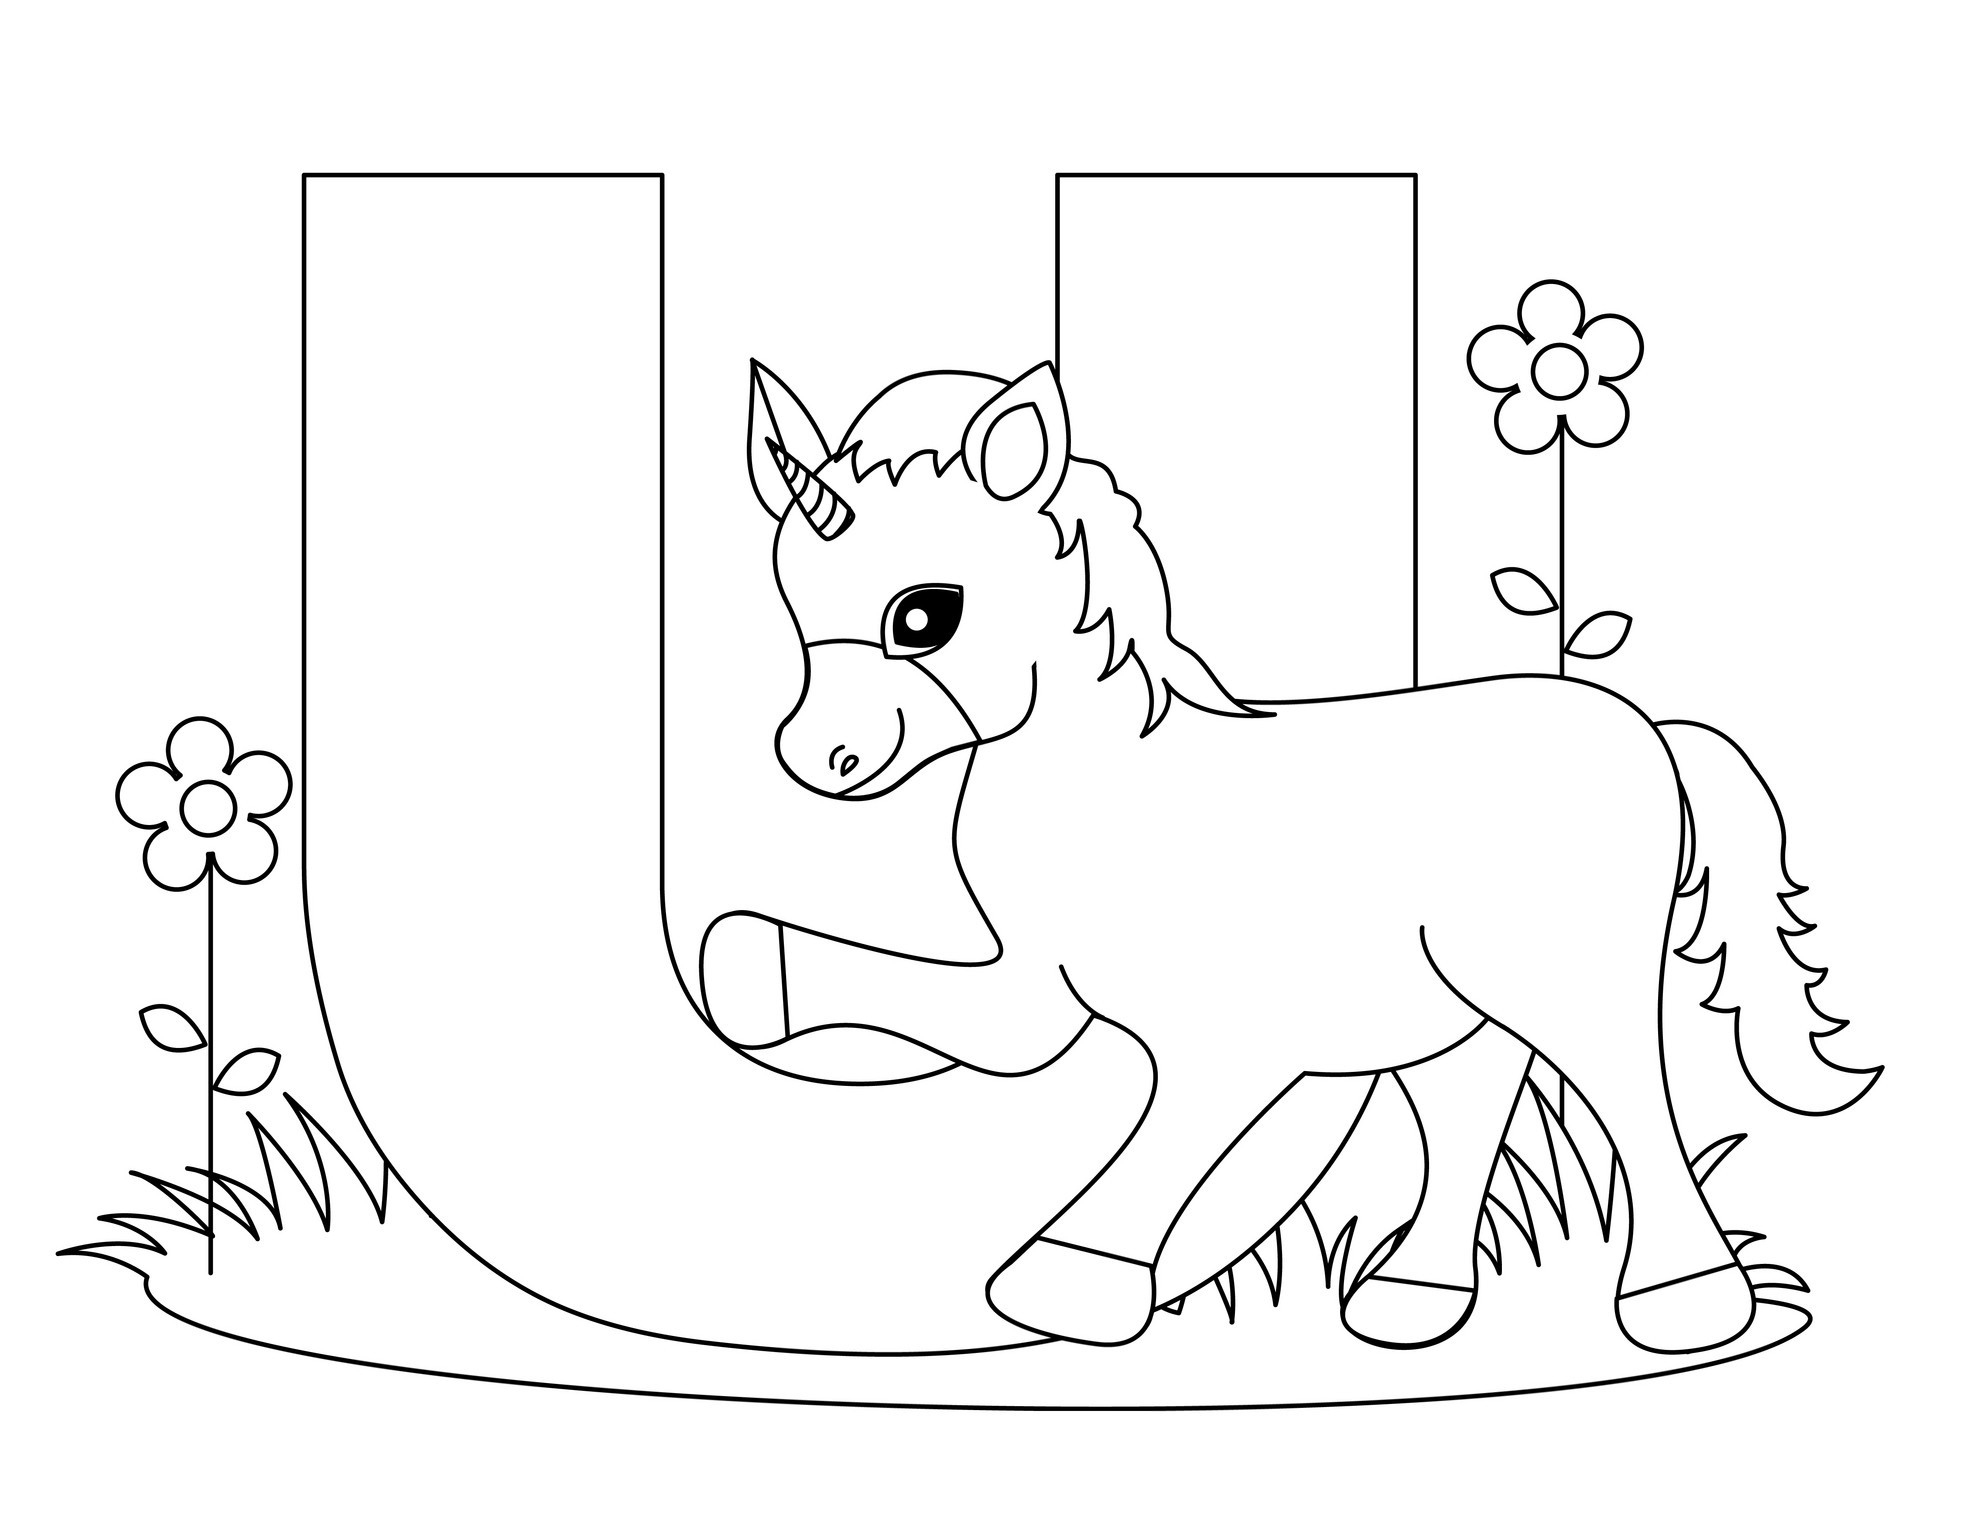 alphabet letters coloring pages n - photo#22